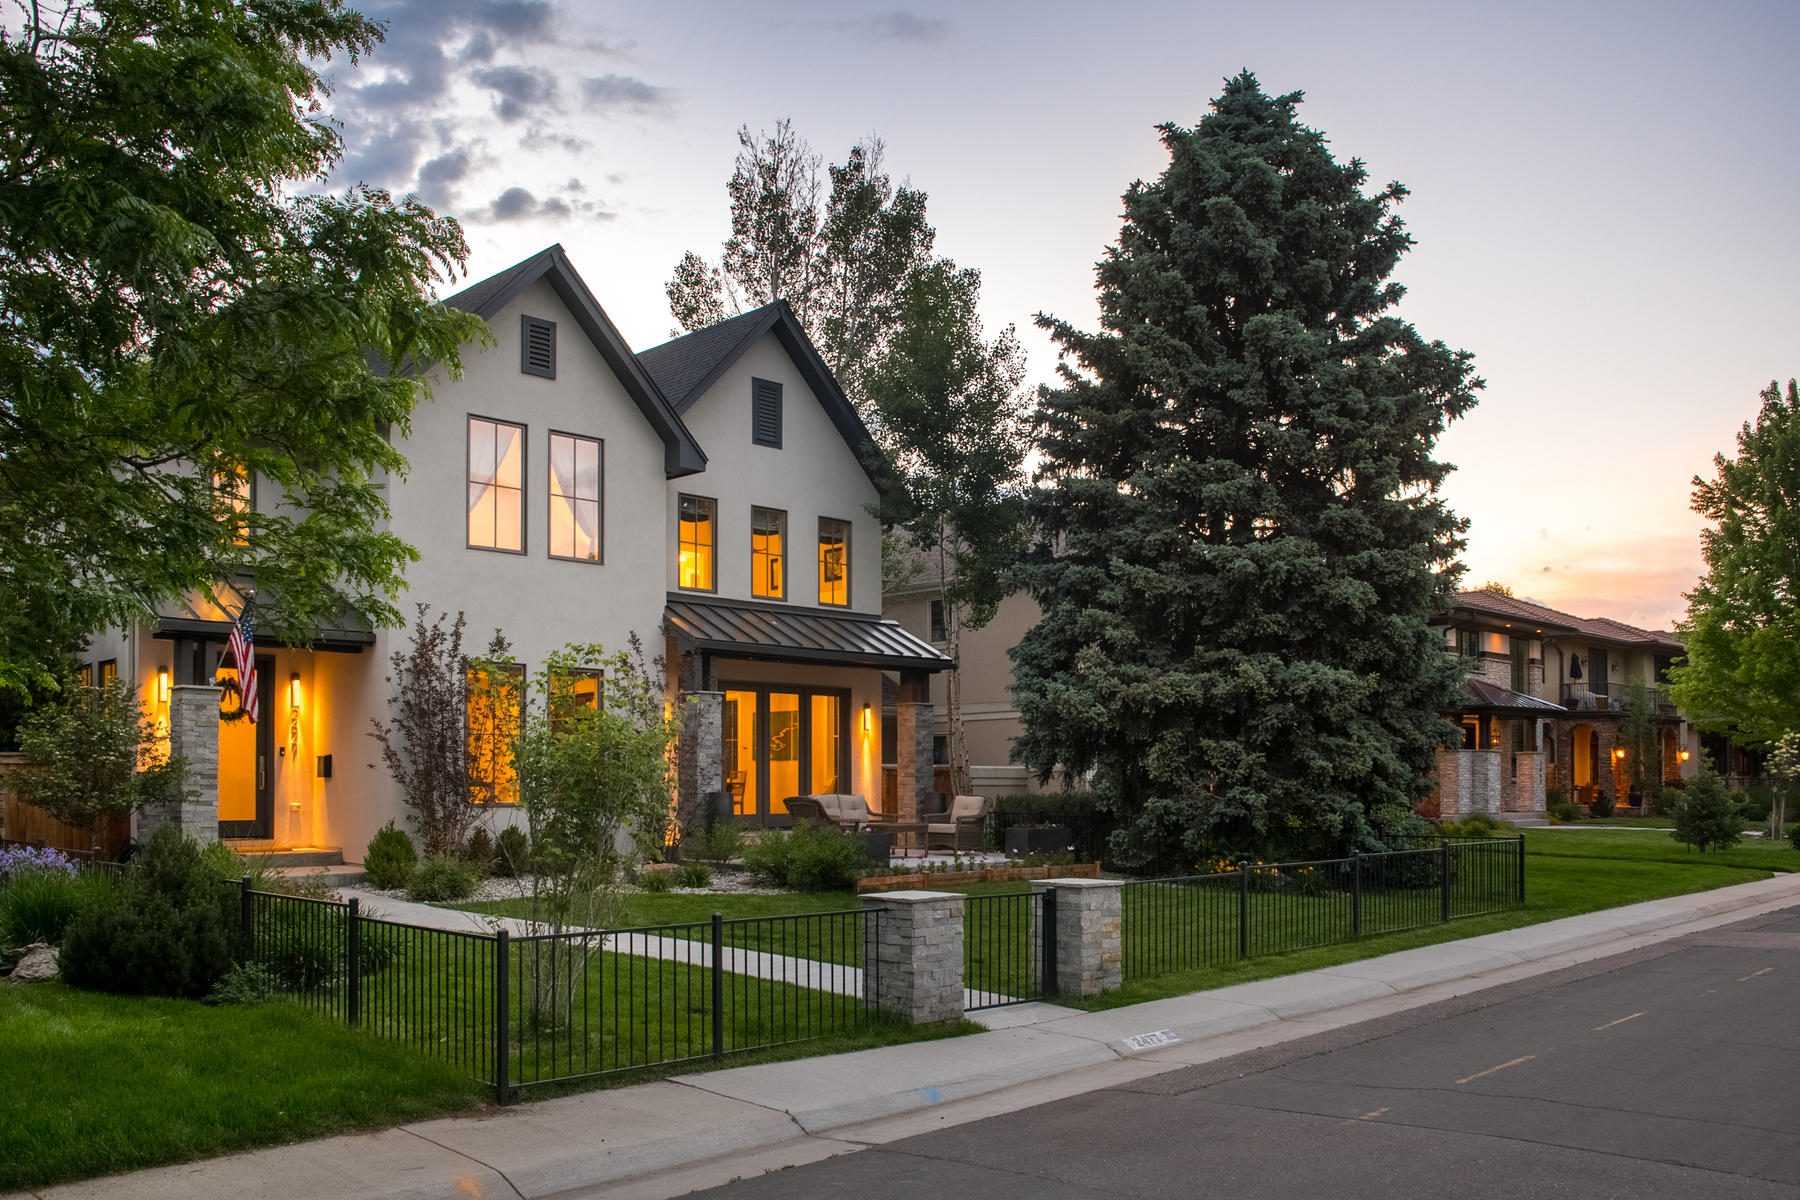 Single Family Home for Active at 2477 S. Cook Street 2477 S. Cook Street Denver, Colorado 80210 United States